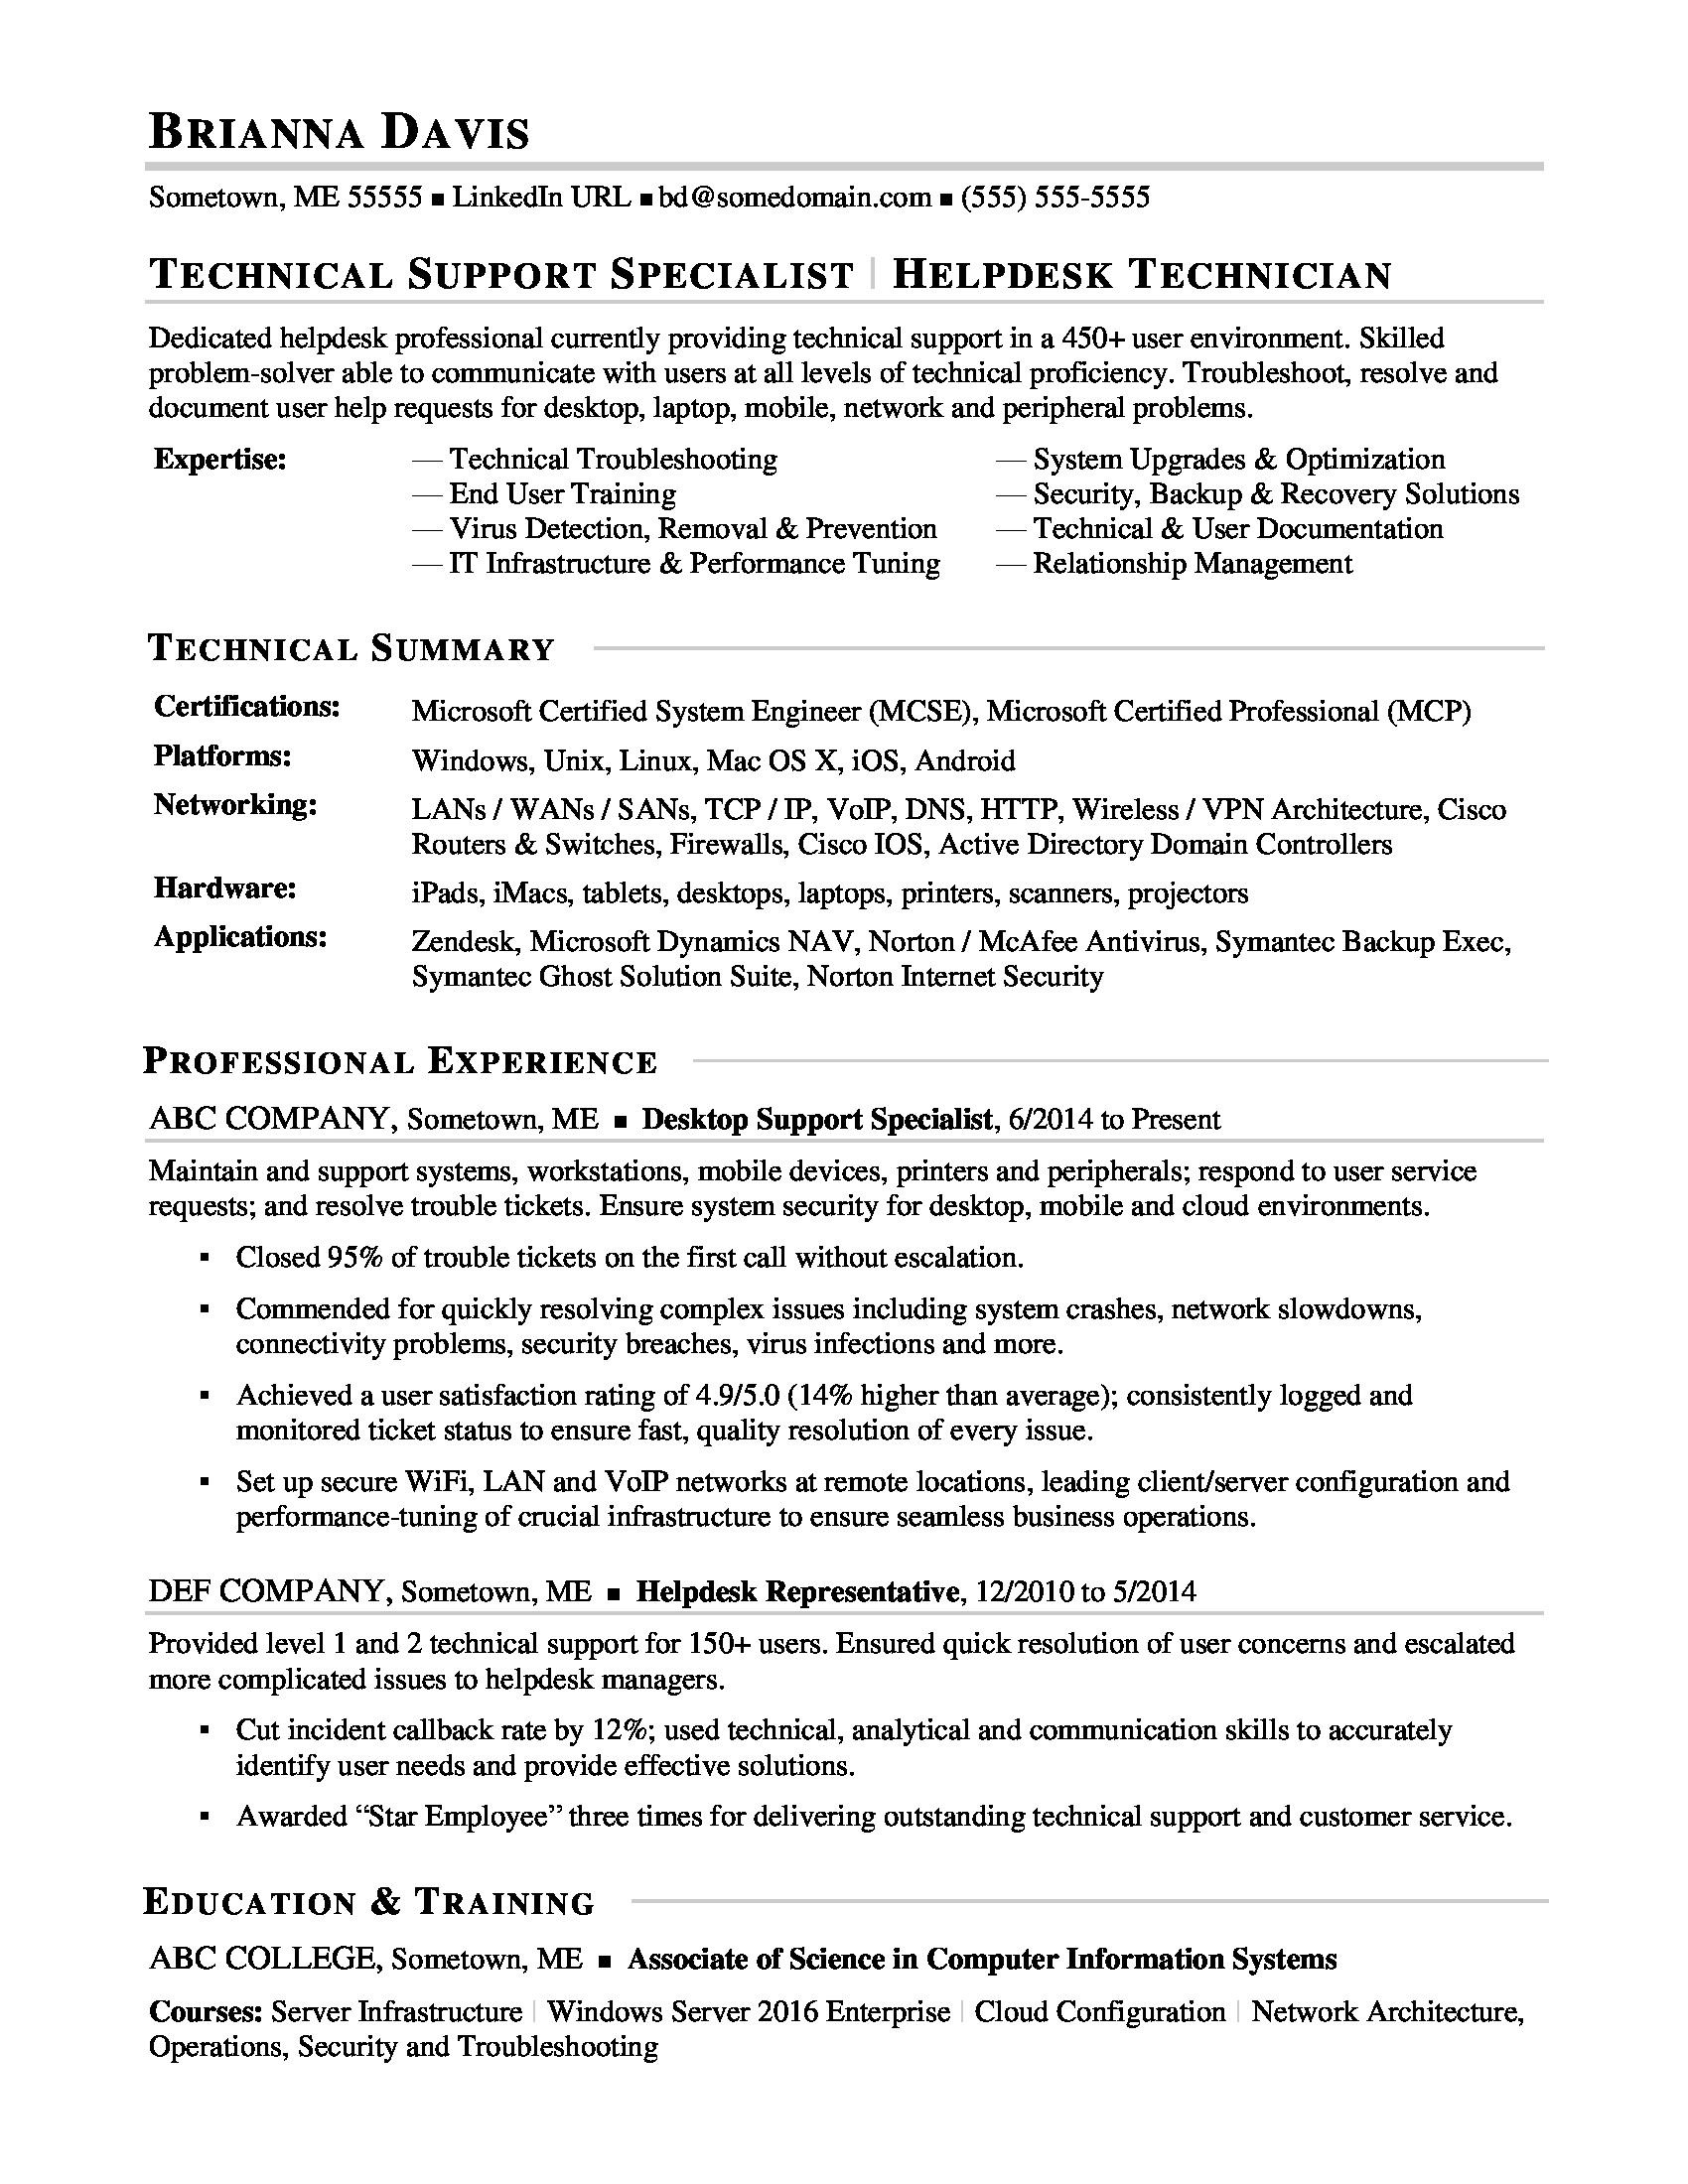 This Sample Resume For An Experienced It Help Desk Professional Shows How You Can Portray Your Unique Qualifications In The Field Job Resume Samples Resume Examples Basic Resume